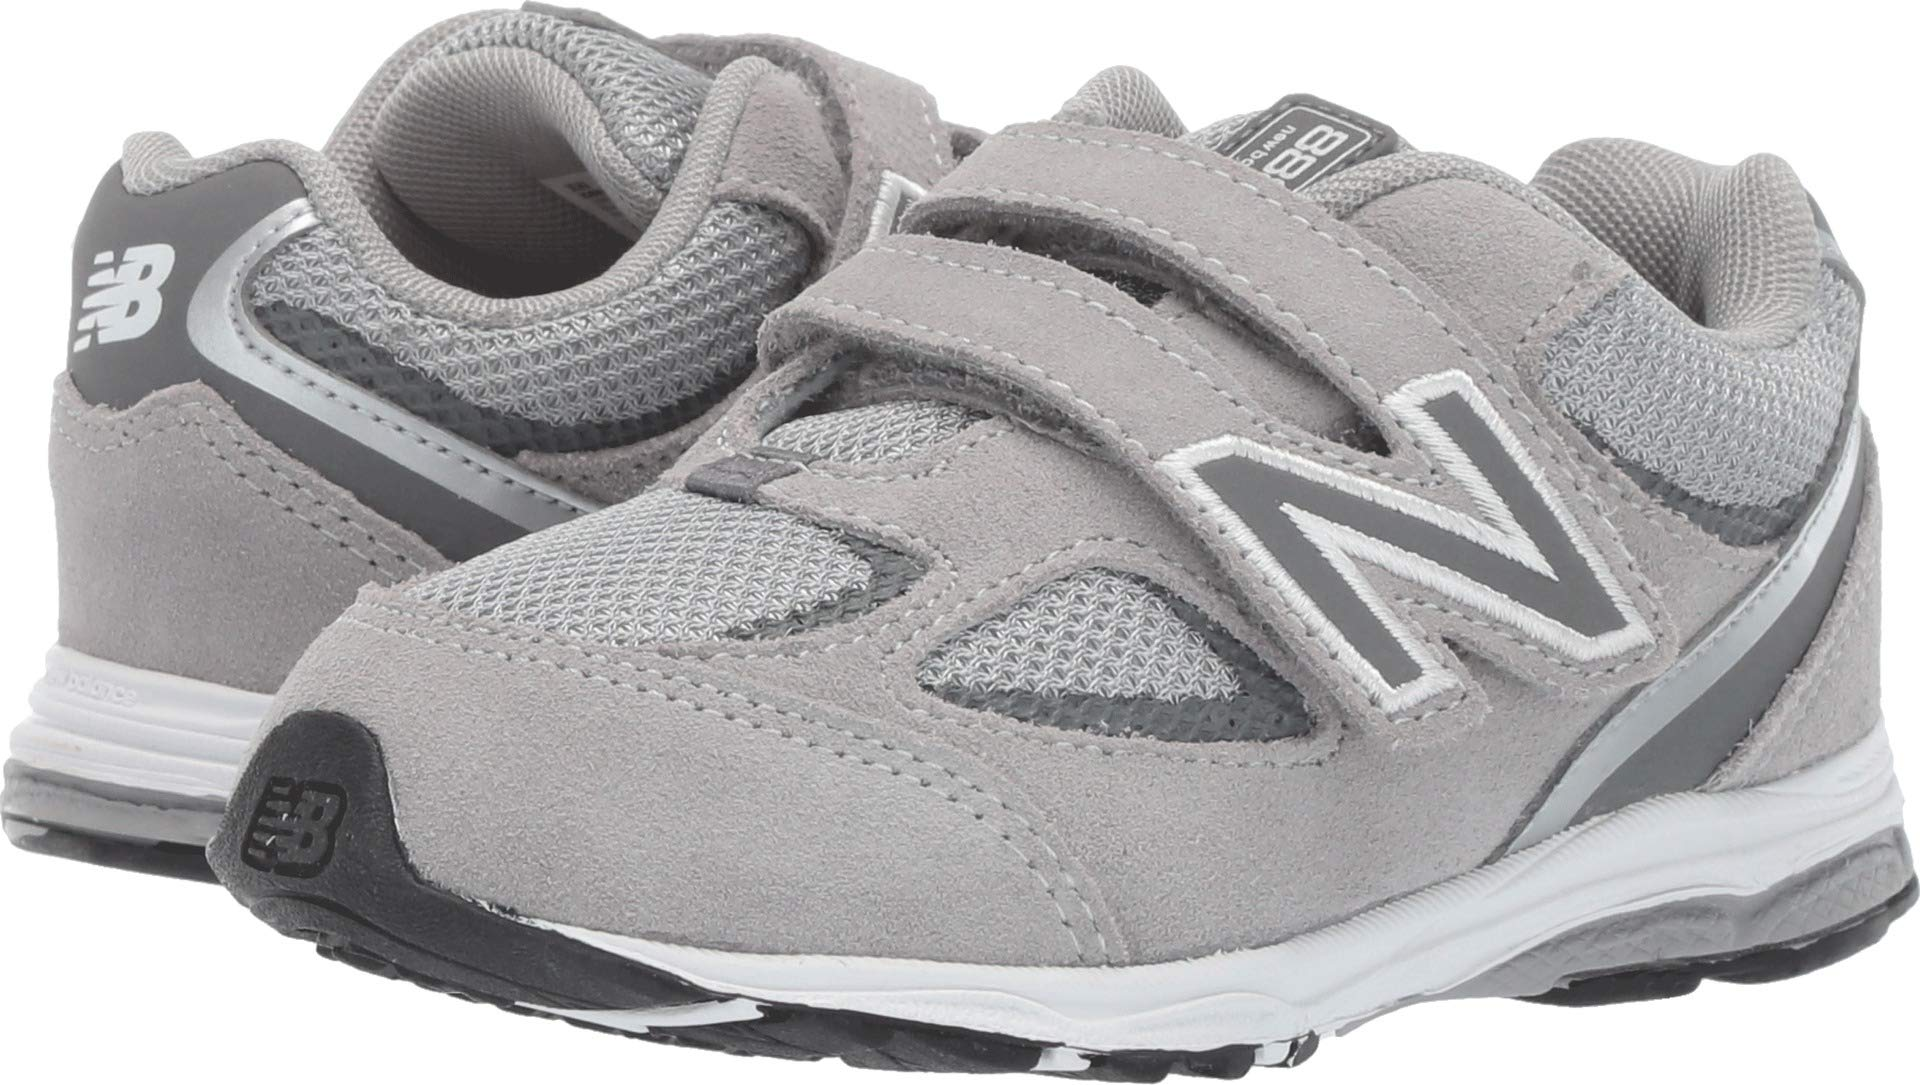 New Balance Boys' 888v2 Hook and Loop Running Shoe Grey, 7 W US Toddler